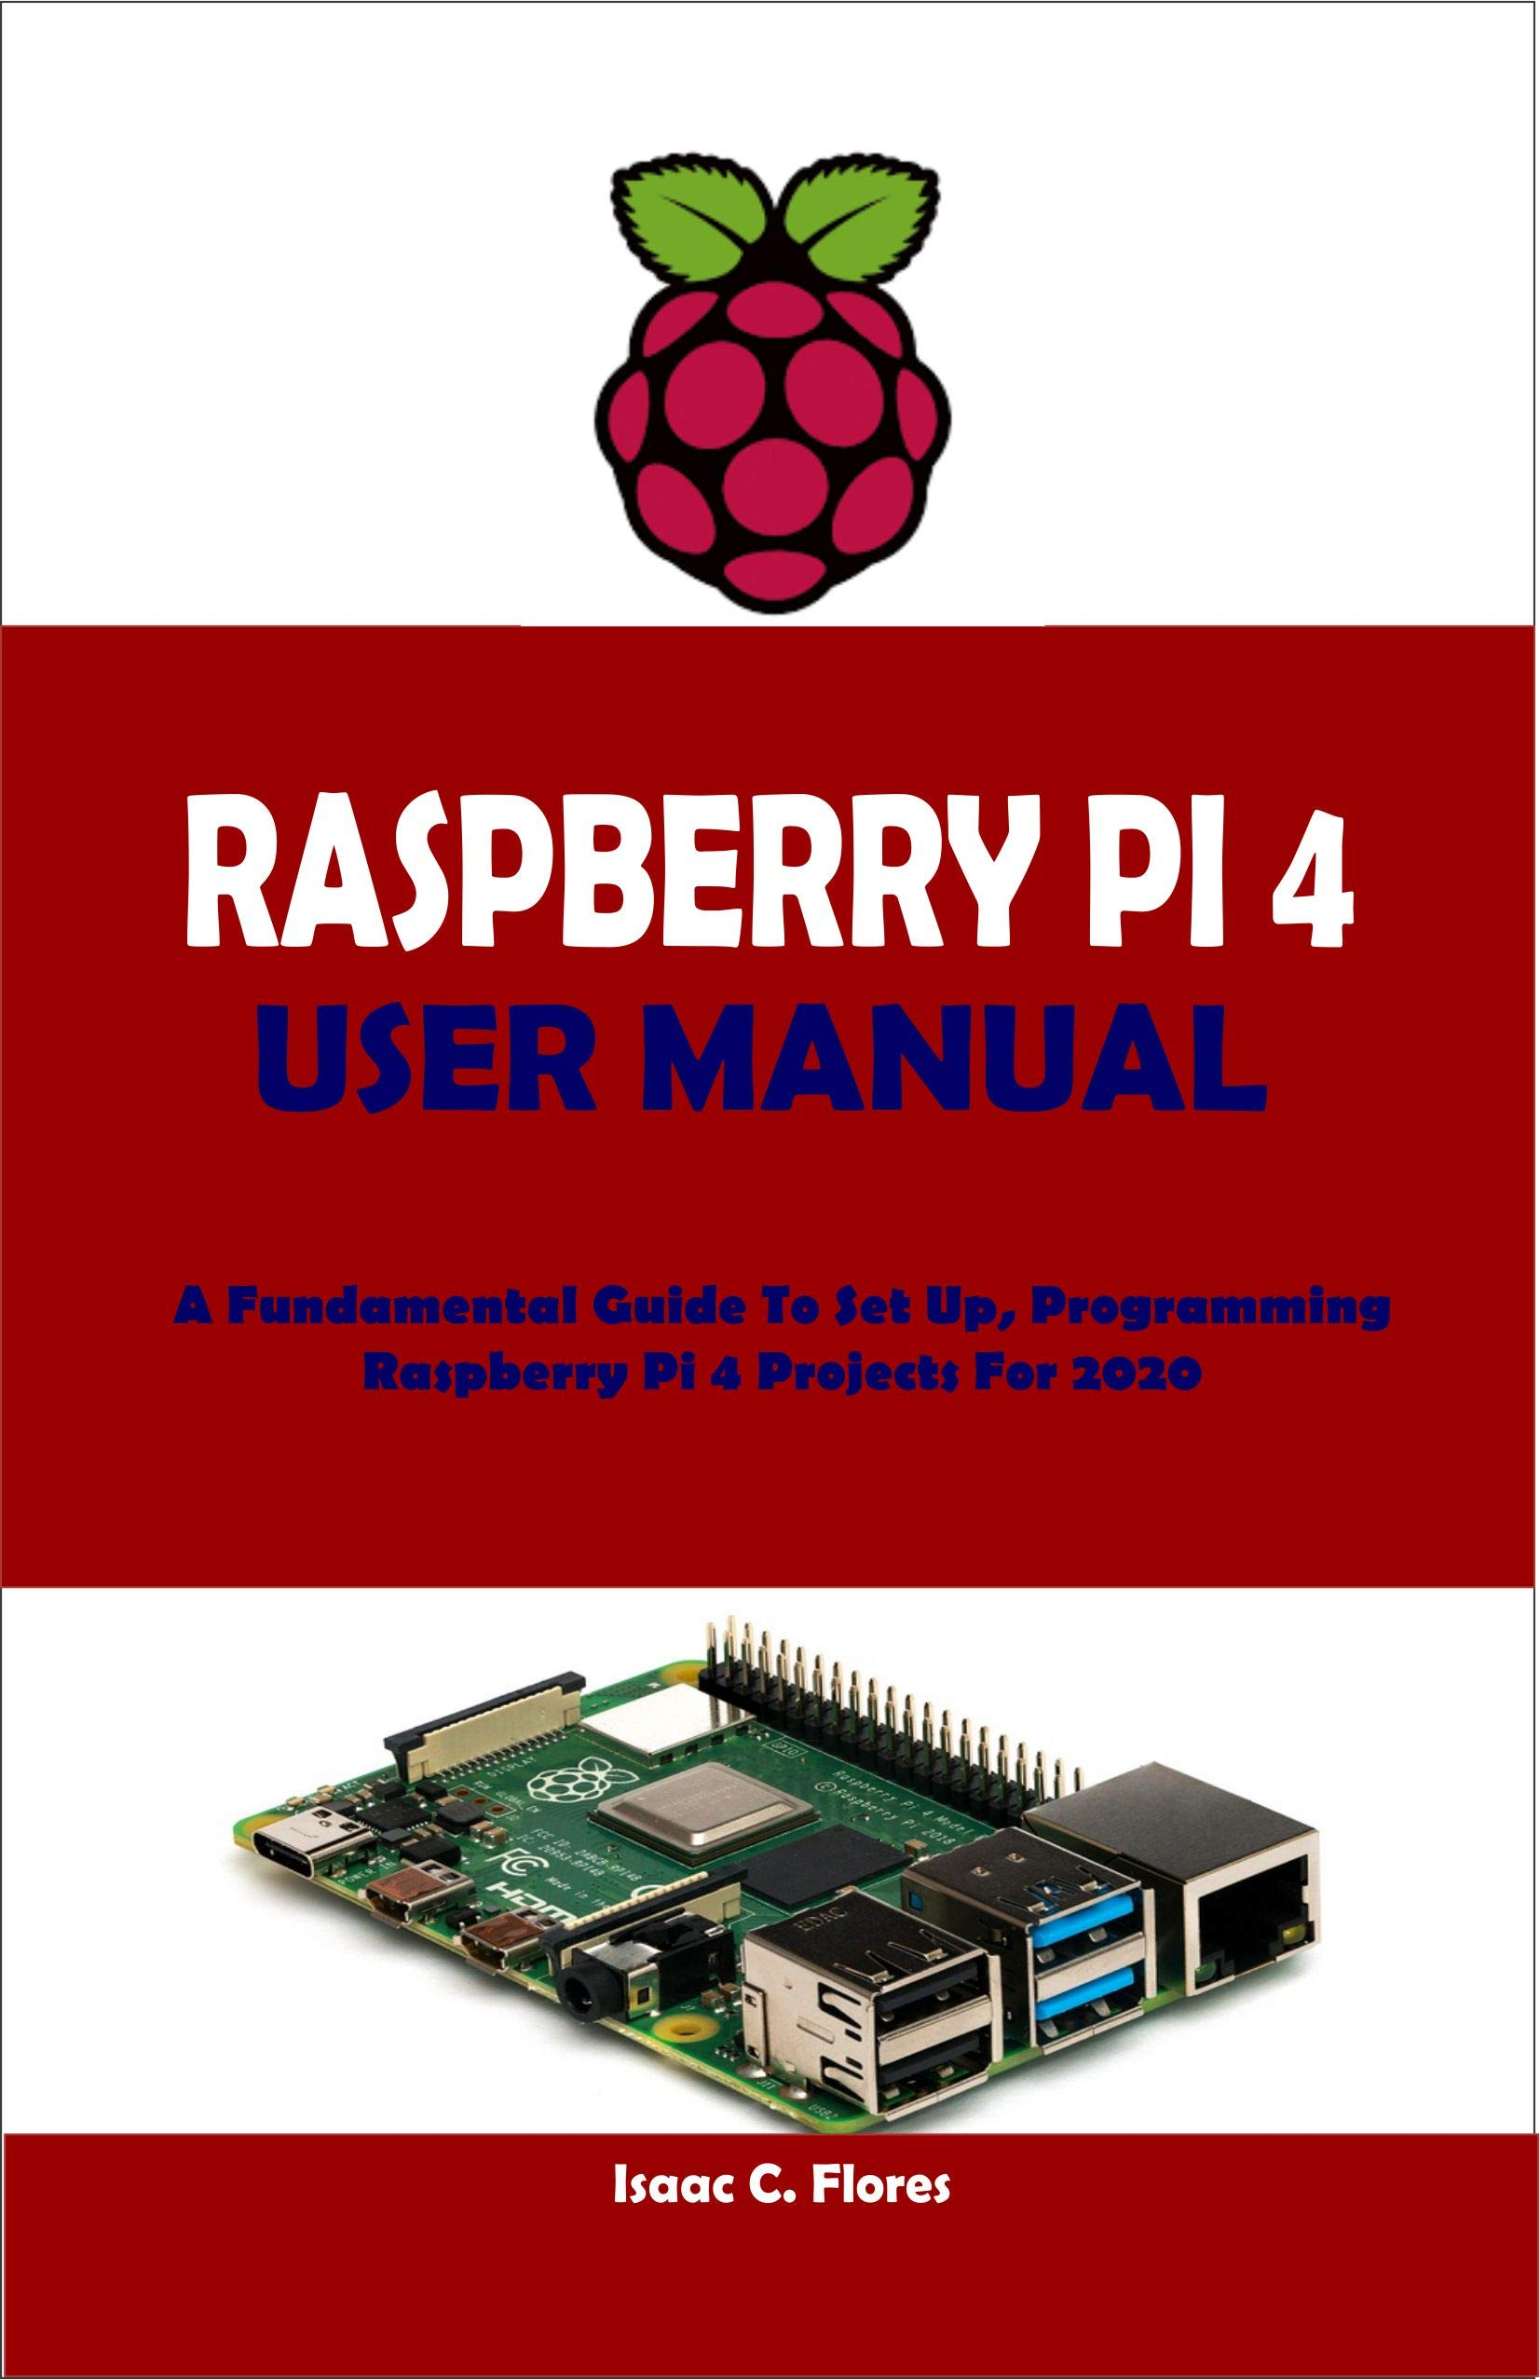 RASPBERRY PI 4 USER MANUAL: A Fundamental Guide To Set Up, Programming Raspberry Pi 4 Projects For 2020